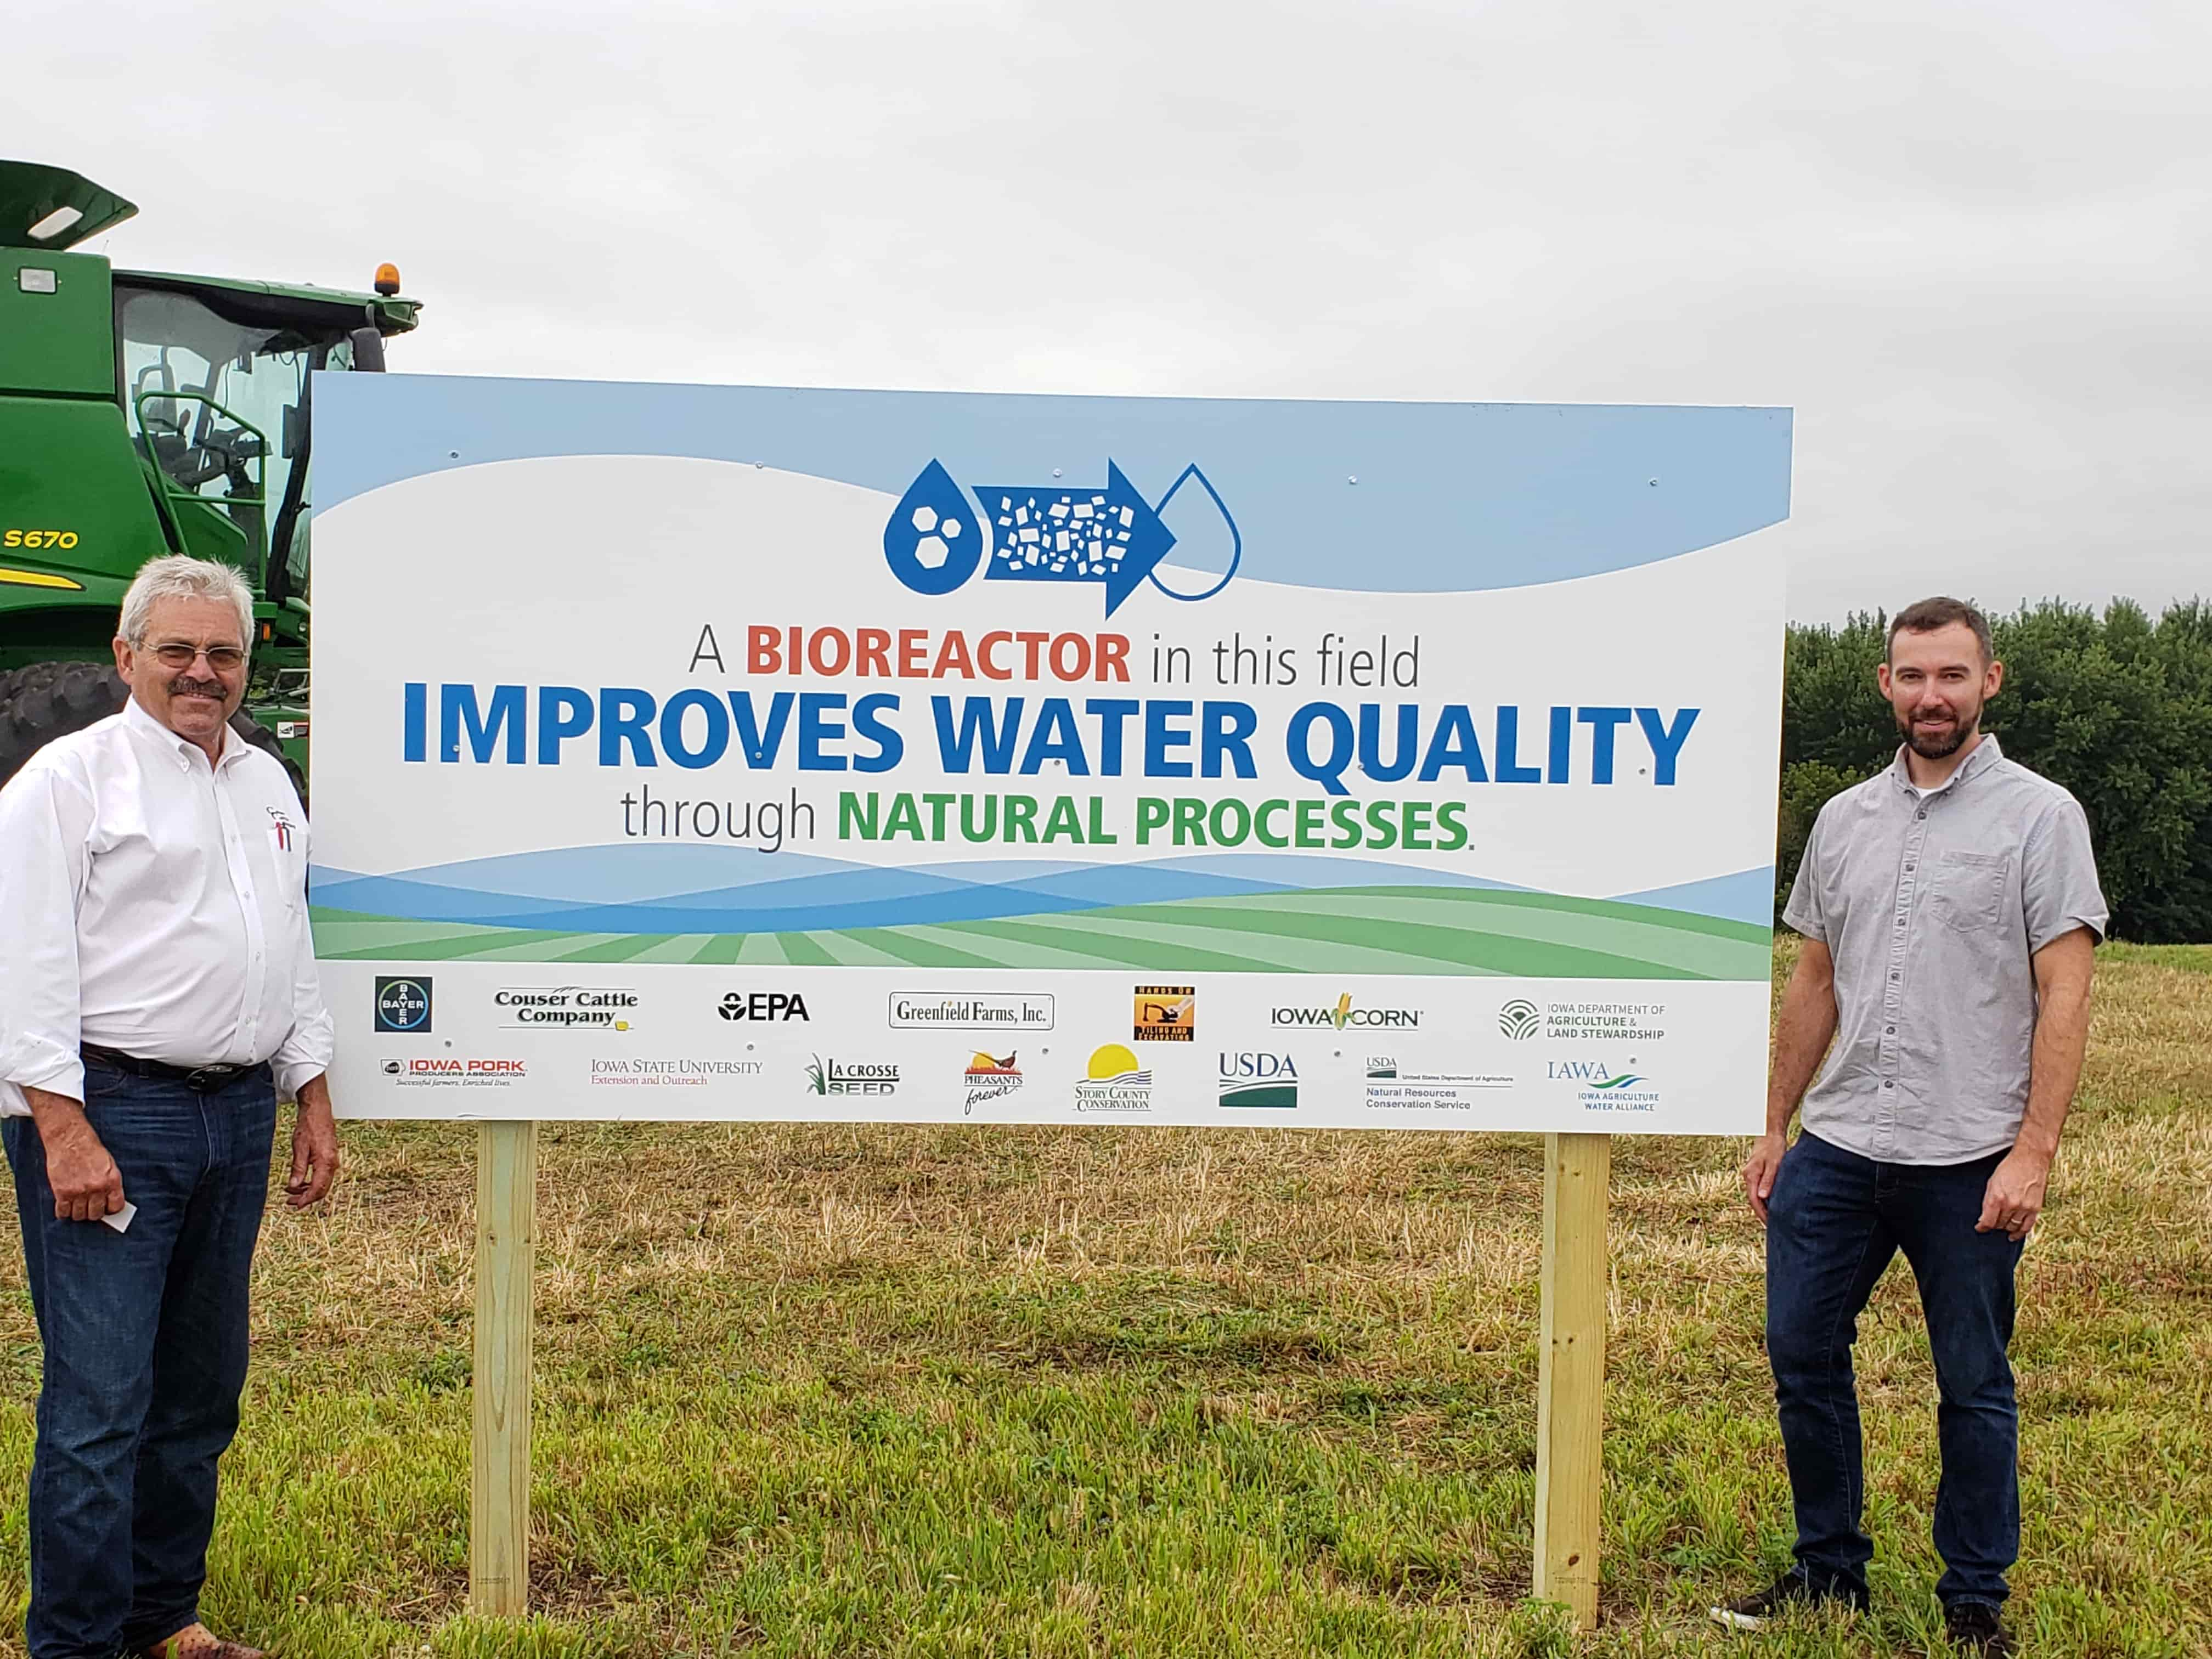 Through the help of numerous partners, Bill has installed two bioreactors on the farm to improve water quality.